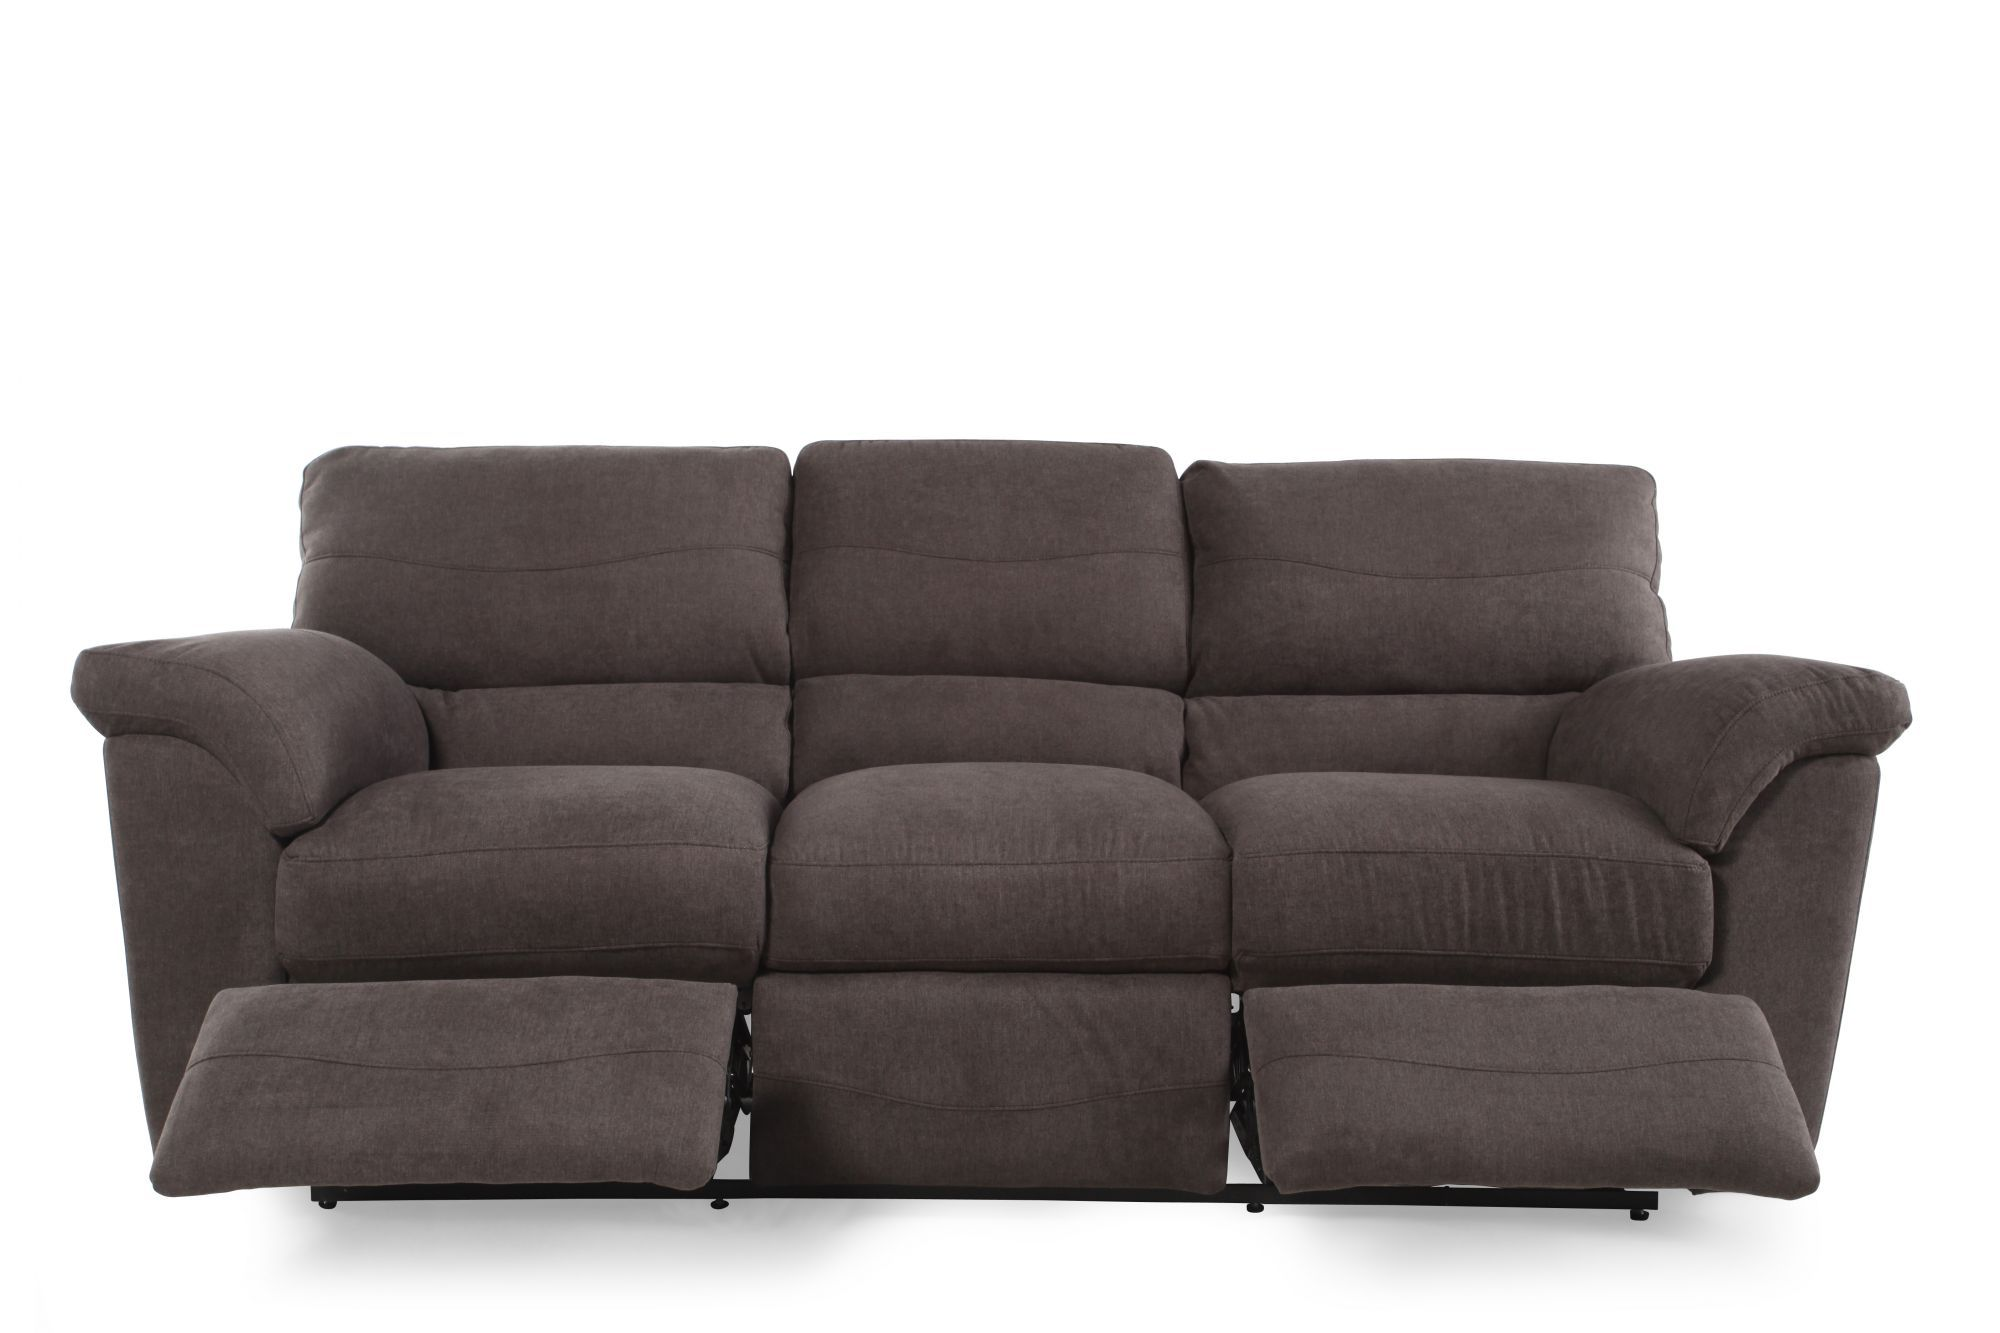 La-Z-Boy Reese Granite Reclining Sofa  sc 1 st  Pinterest : reese sectional lazy boy - Sectionals, Sofas & Couches